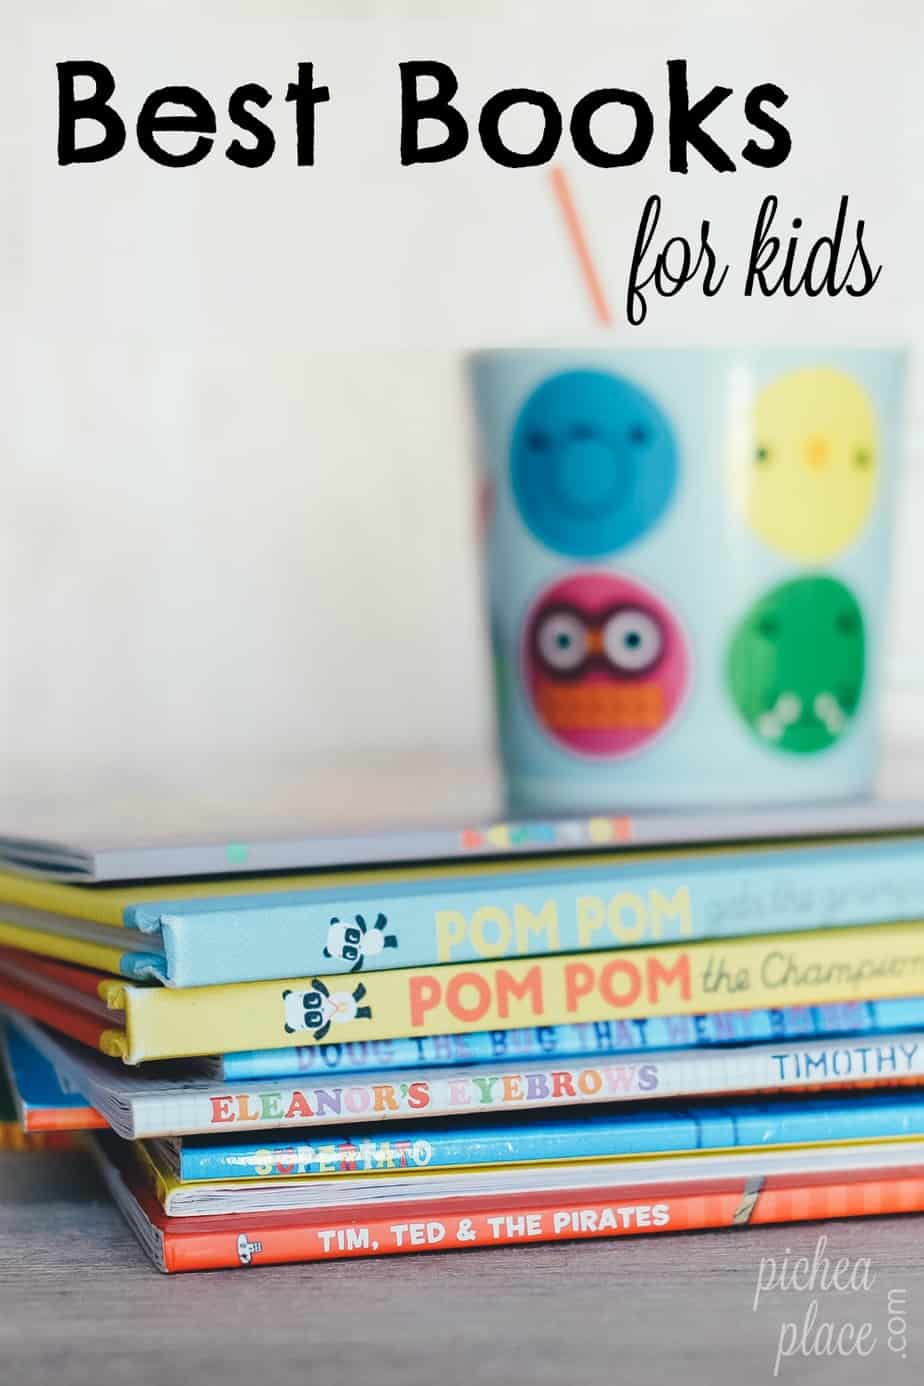 best books for kids | books for children | themed book lists for kids of all ages